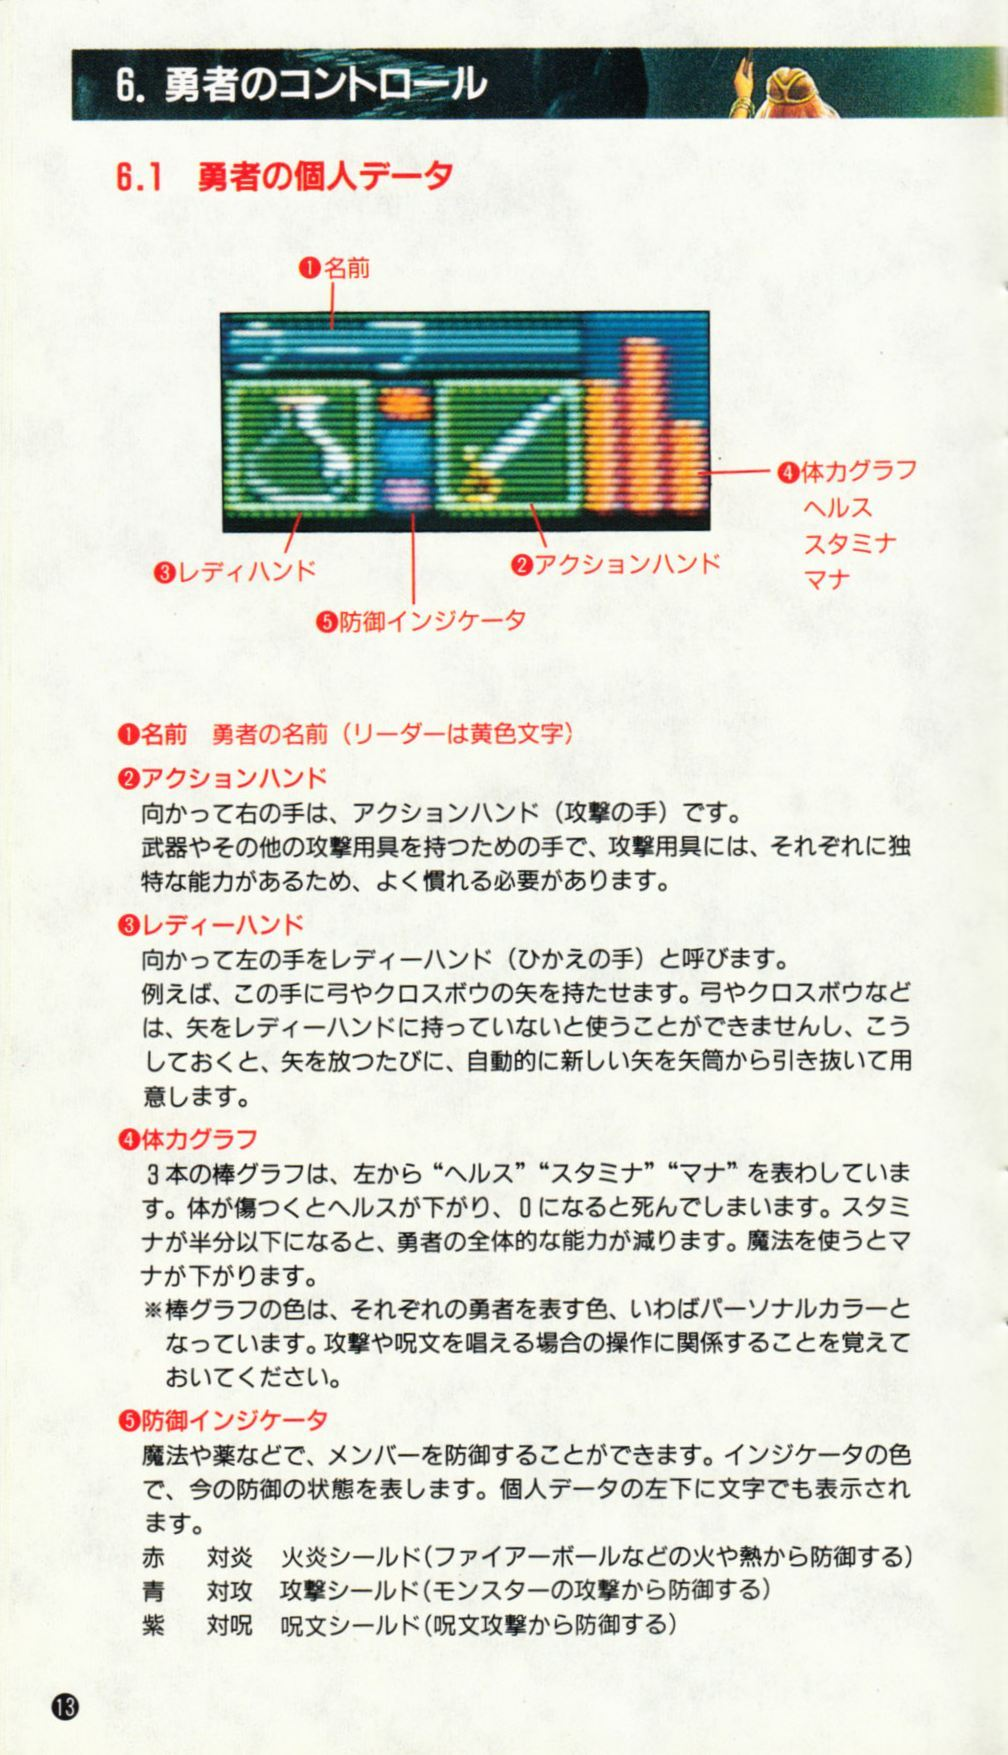 Game - Dungeon Master - JP - Super Famicom - Manual - Page 016 - Scan